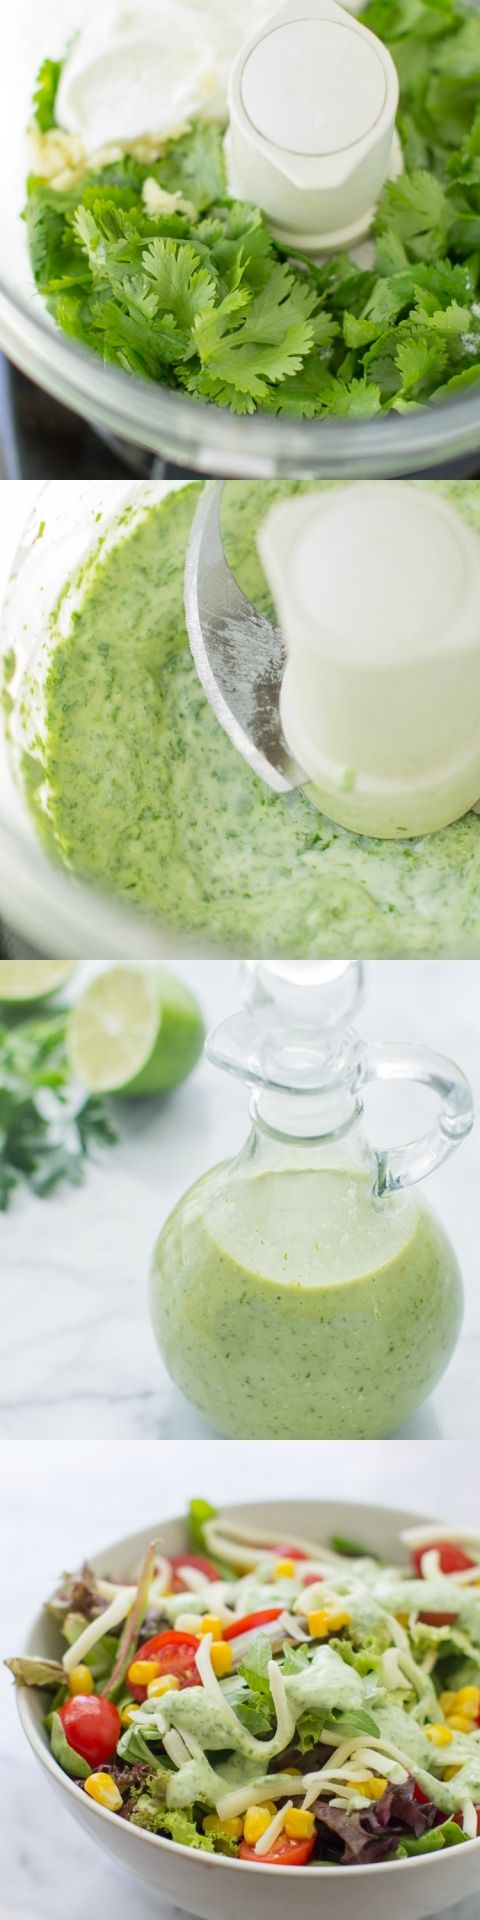 An easy, creamy cilantro lime dressing made with Greek yogurt! So good you'll want to eat it with a spoon. Guaranteed to brighten up any salad!